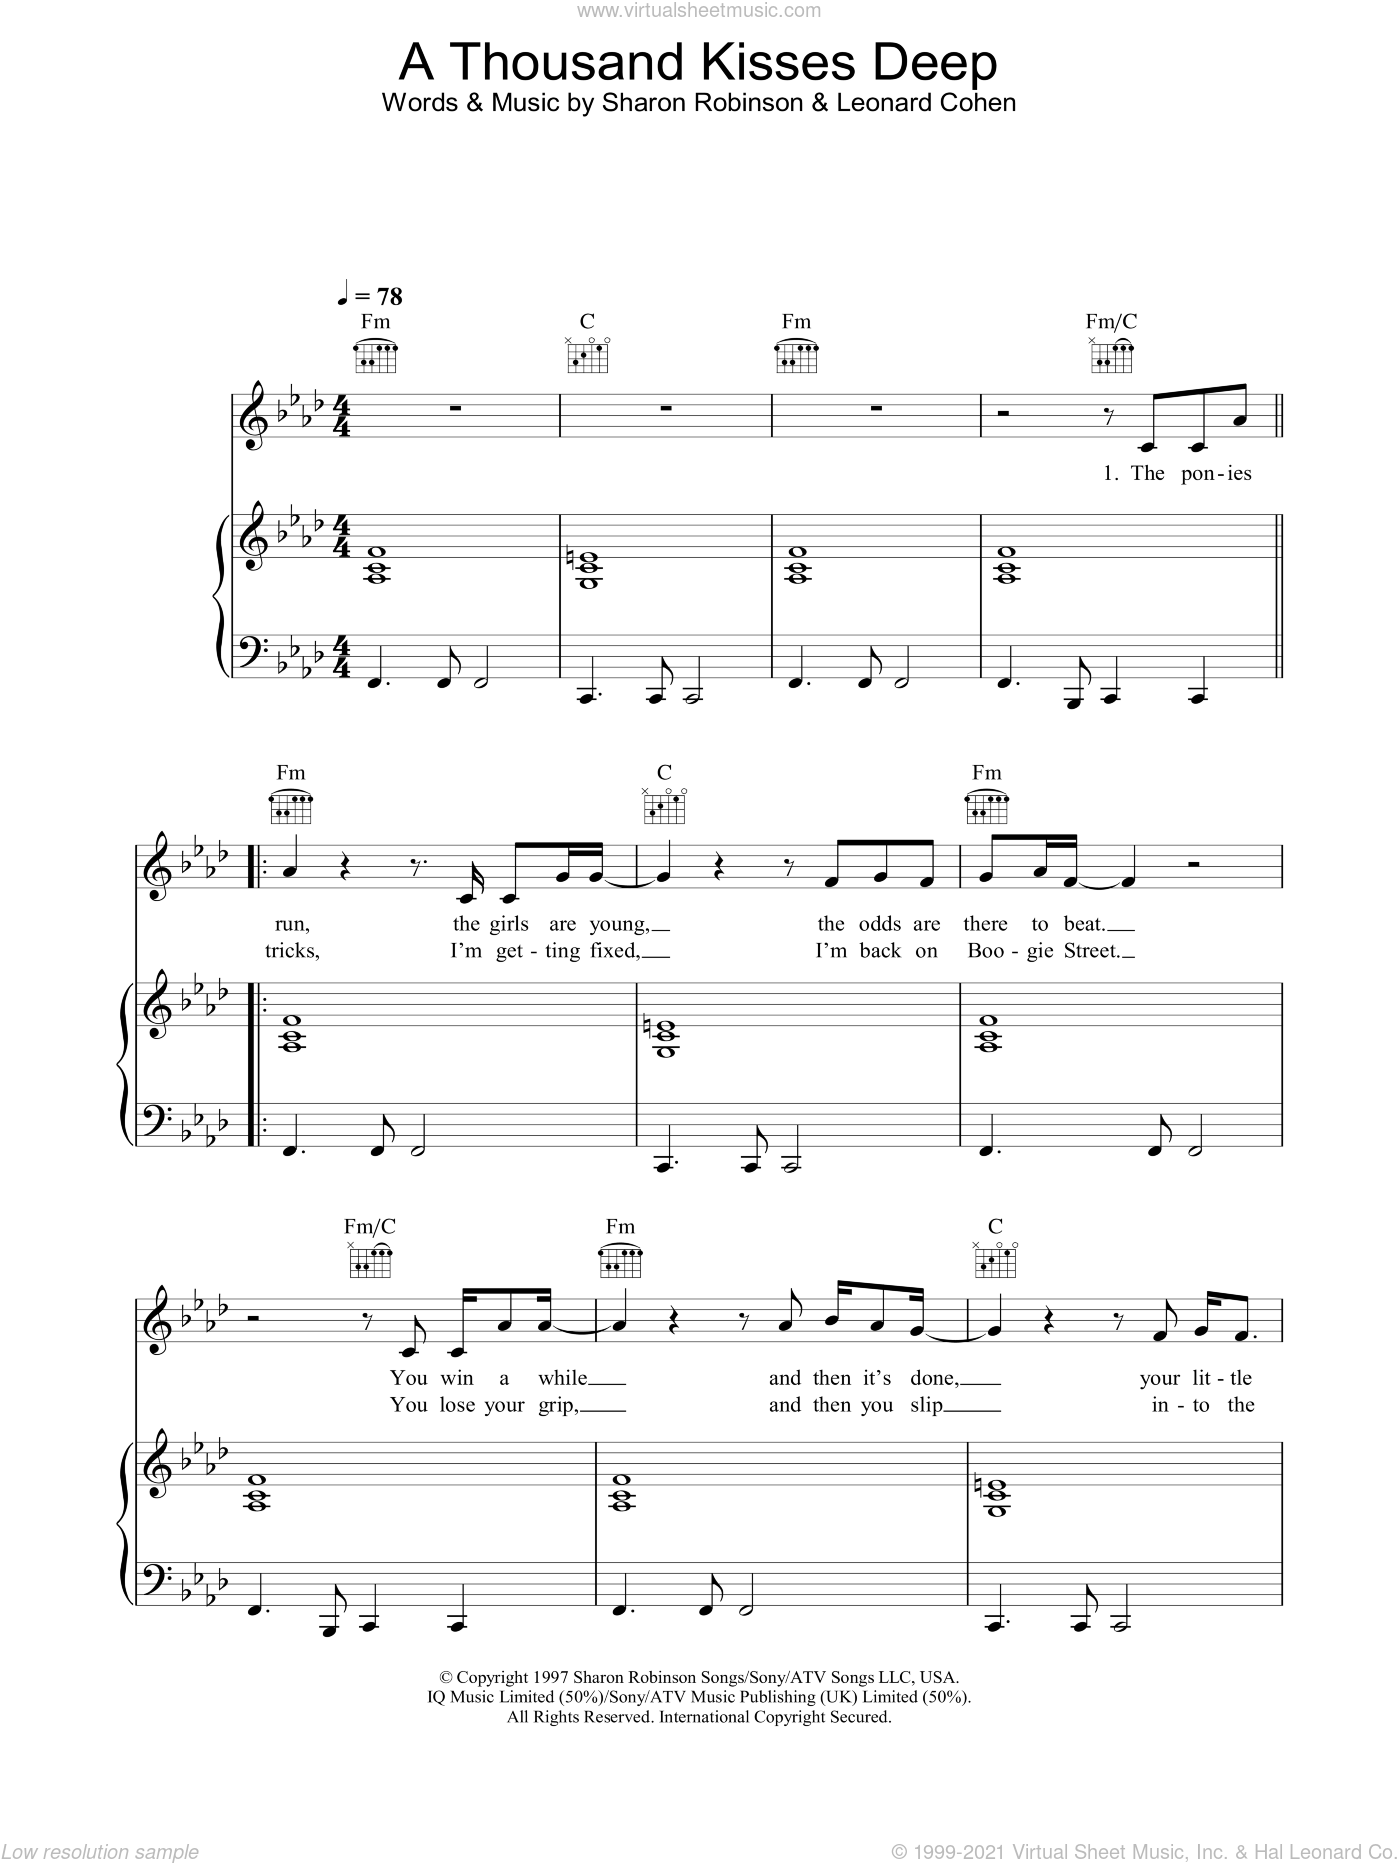 A Thousand Kisses Deep sheet music for voice, piano or guitar by Leonard Cohen and Sharon Robinson, intermediate skill level